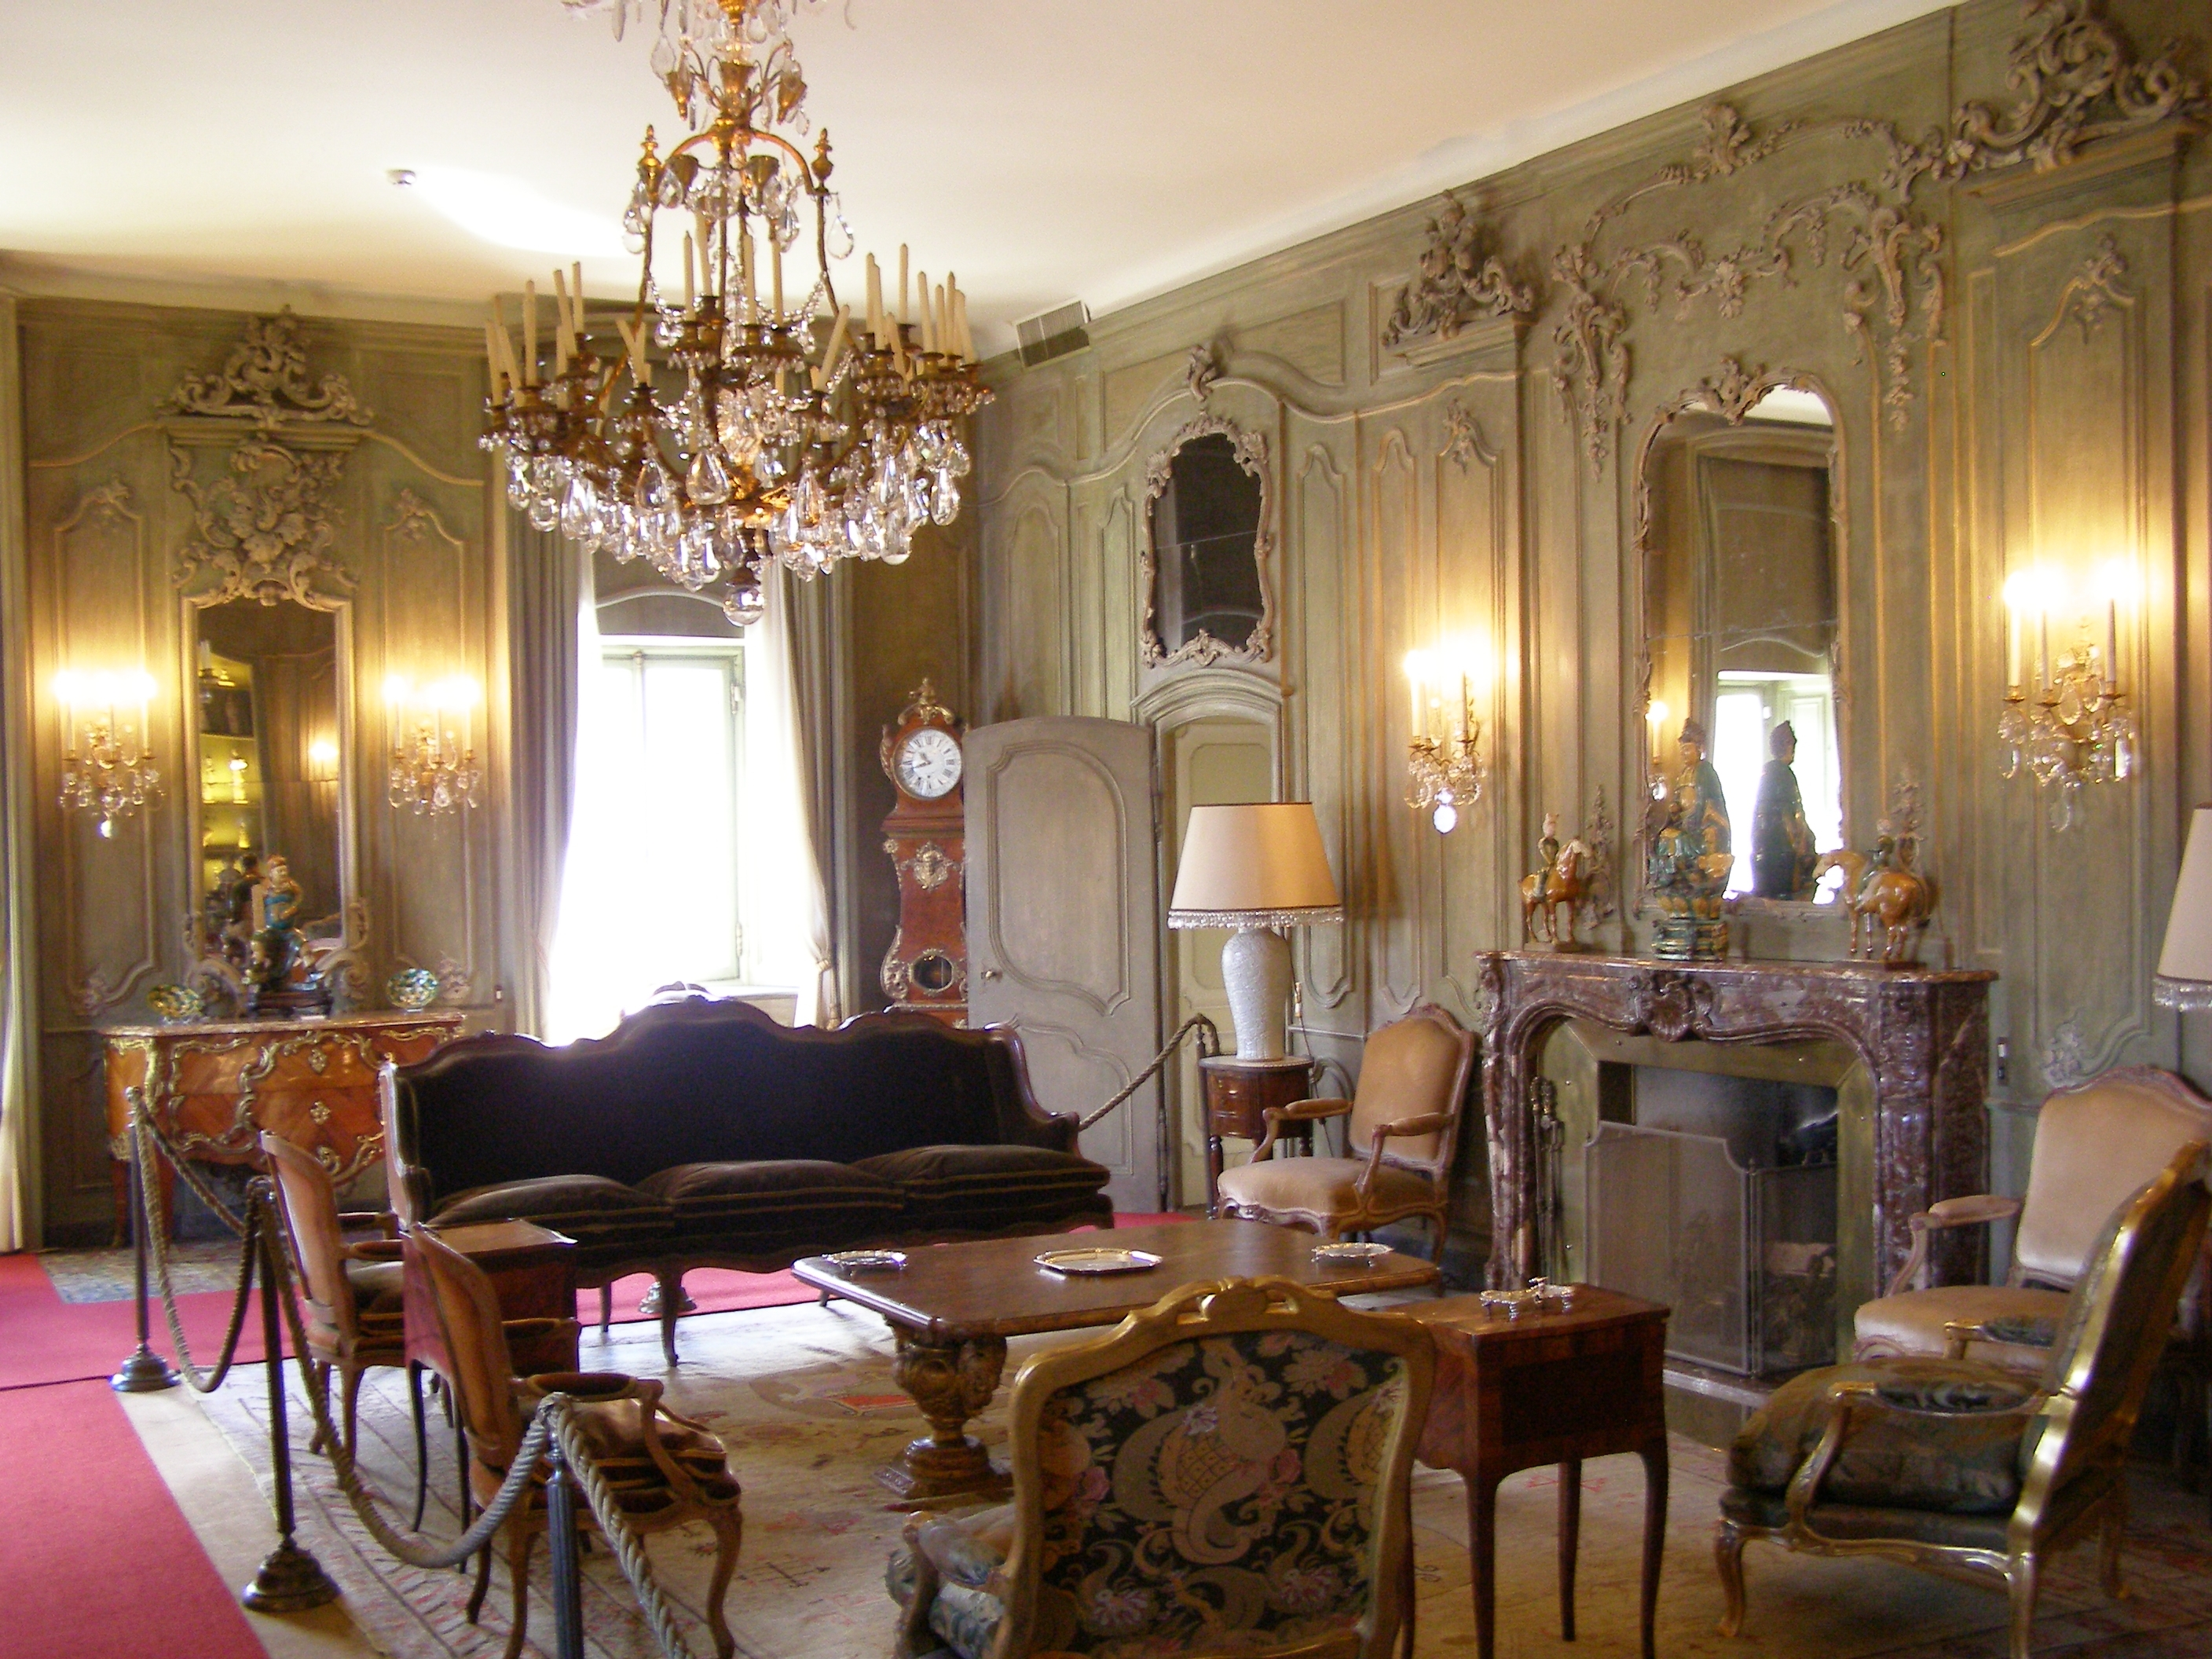 Thinking of a career in Interior Decoration?